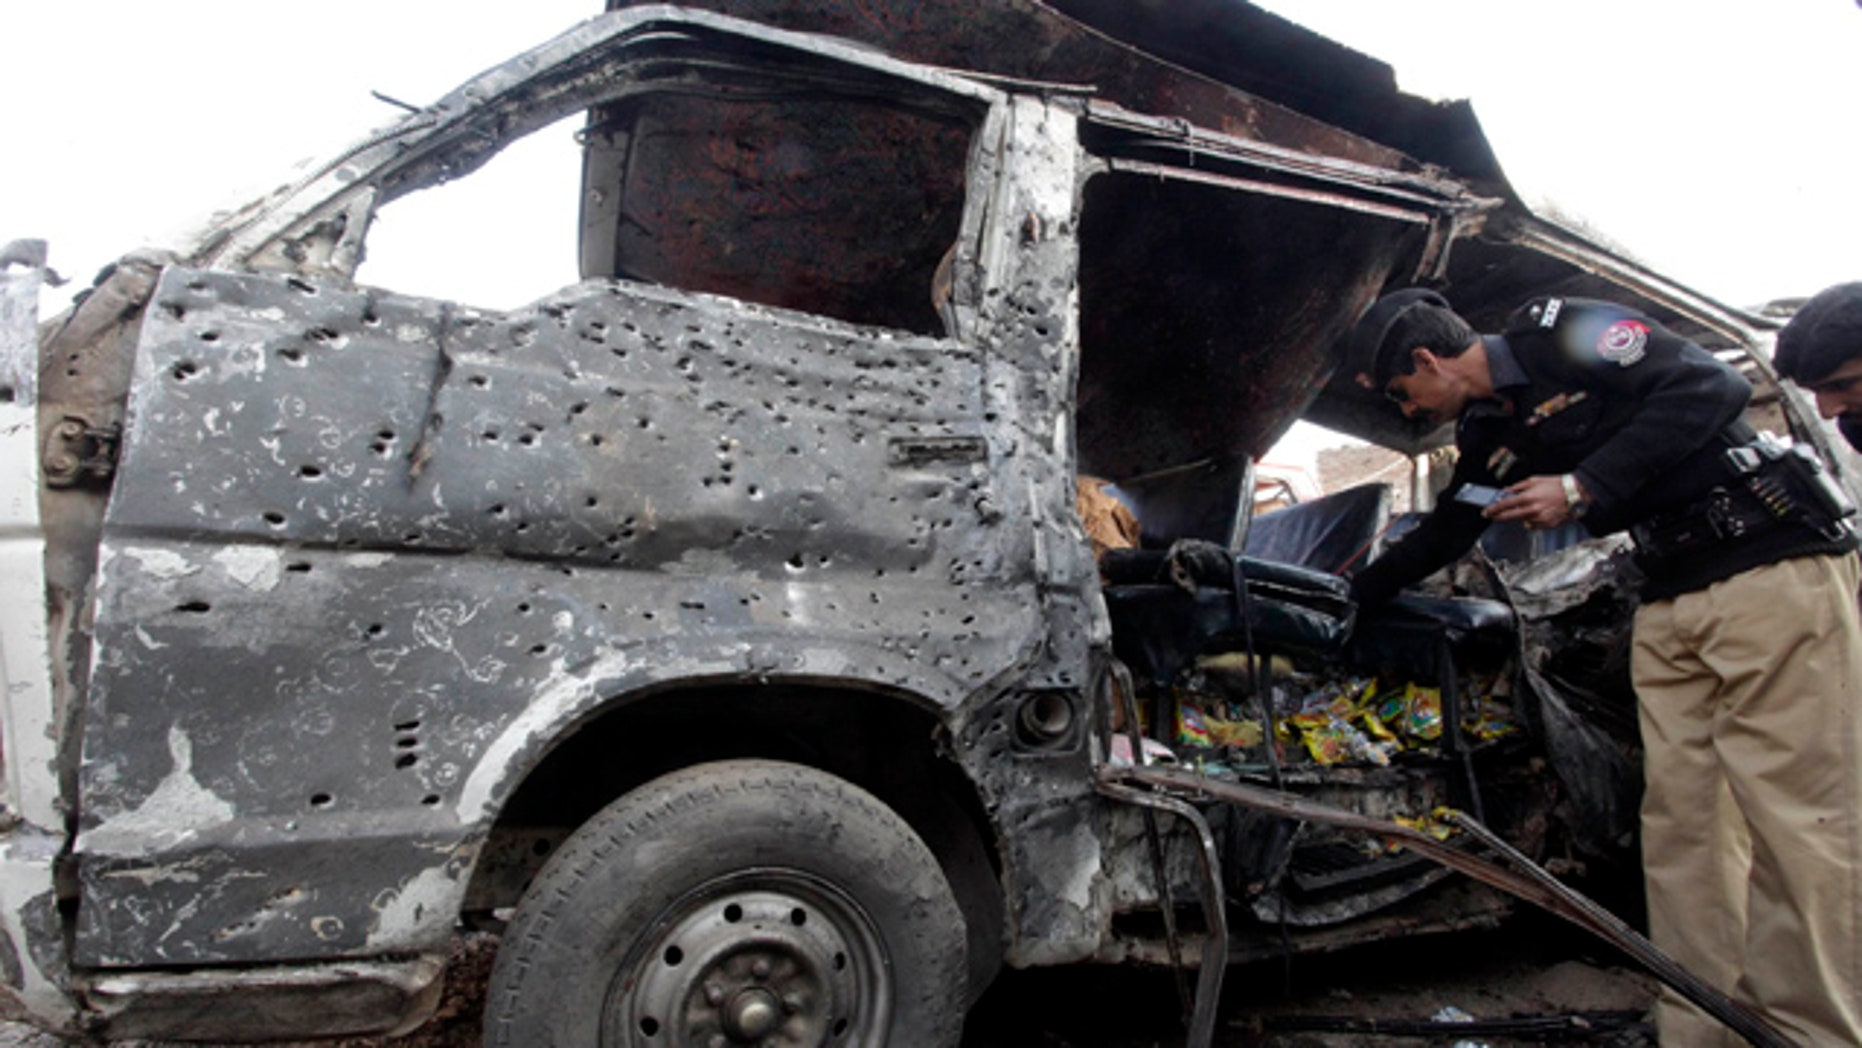 Dec. 8: Pakistani security officials examine the vehicle targeted by a suicide attacker in Kohat, 37 miles south of Peshawar, Pakistan.